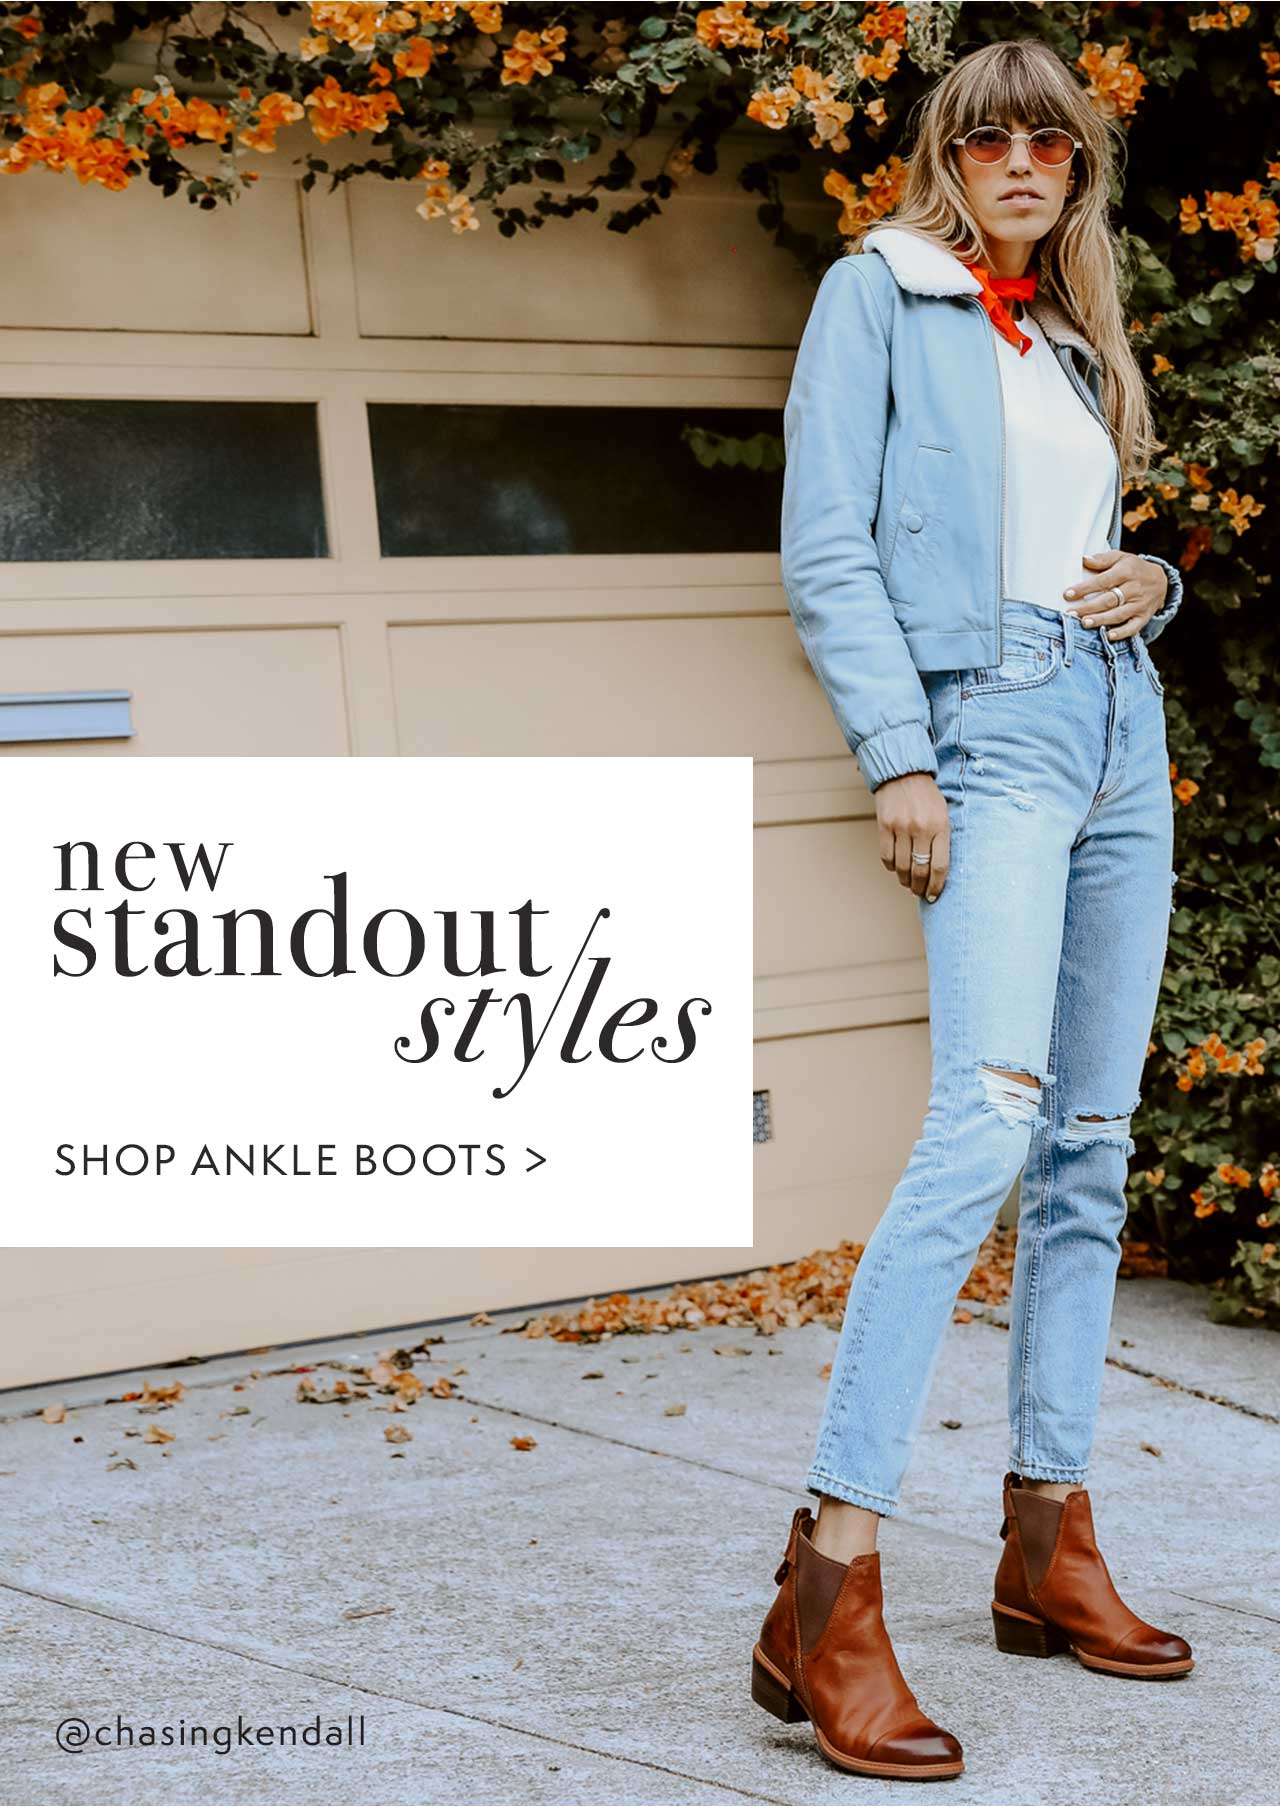 New Standout Styles @chasingkendall Shop Ankle Boots